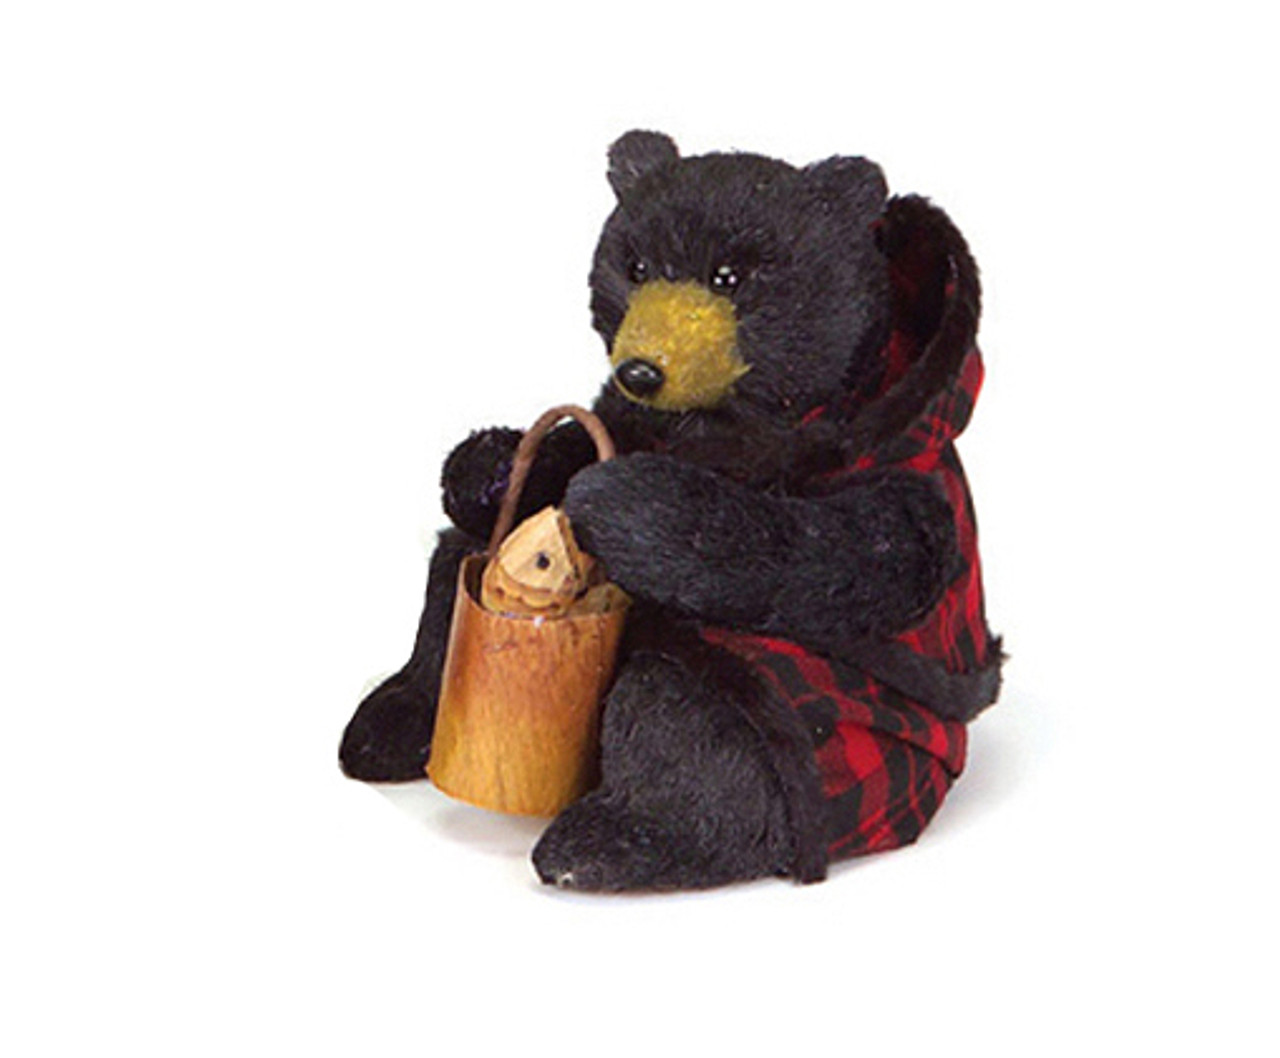 8 rustic lodge sitting black bear christmas figure in red plaid flaws 31345810